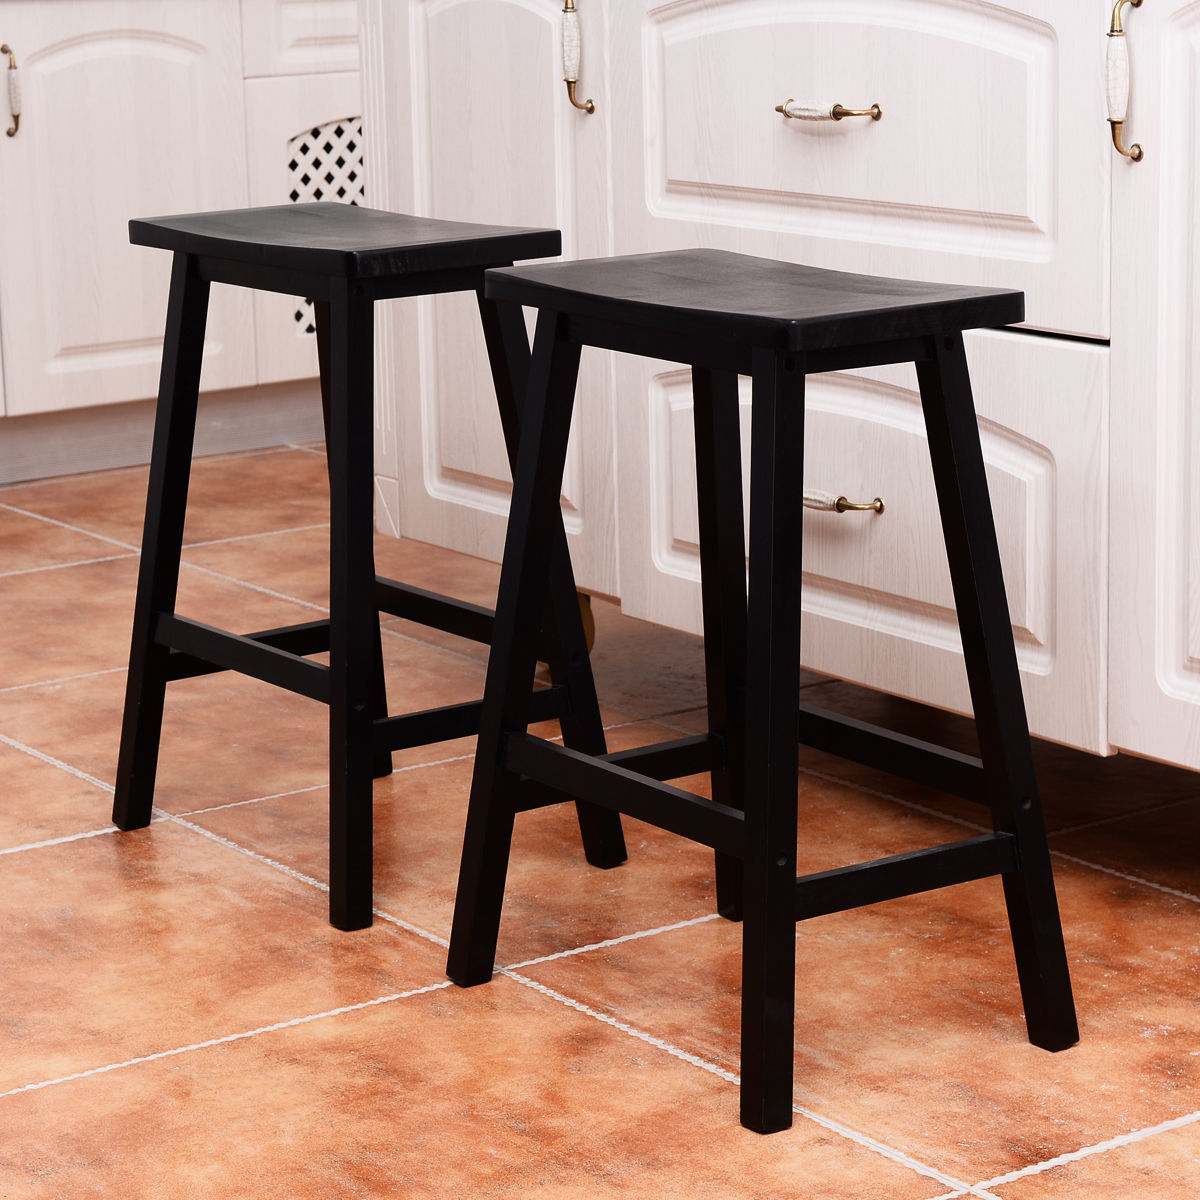 24 Height Bar Stools Kitchen Dining Room Saddle Seat Wooden Counter